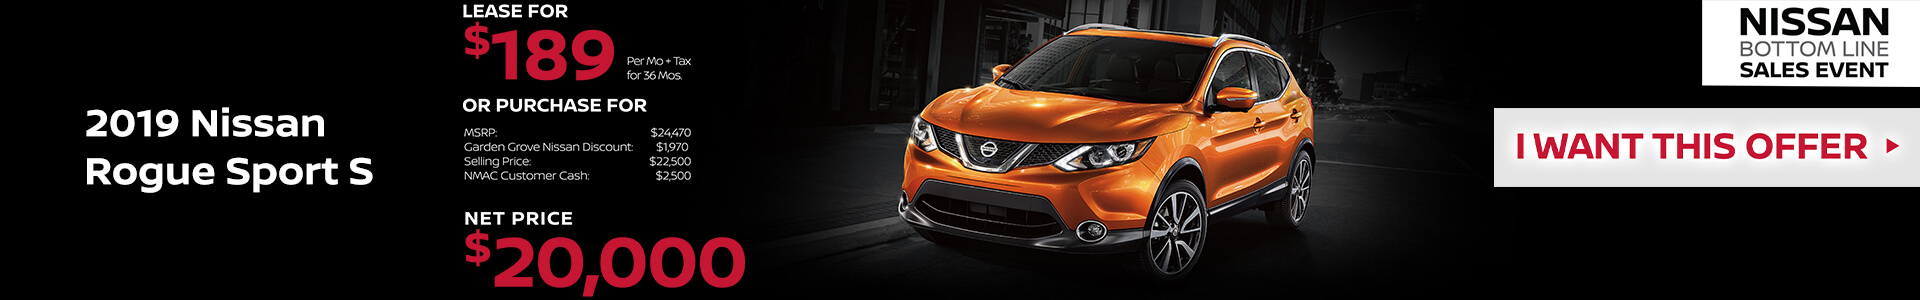 2019 Nissan Rogue Sport Lease for $189